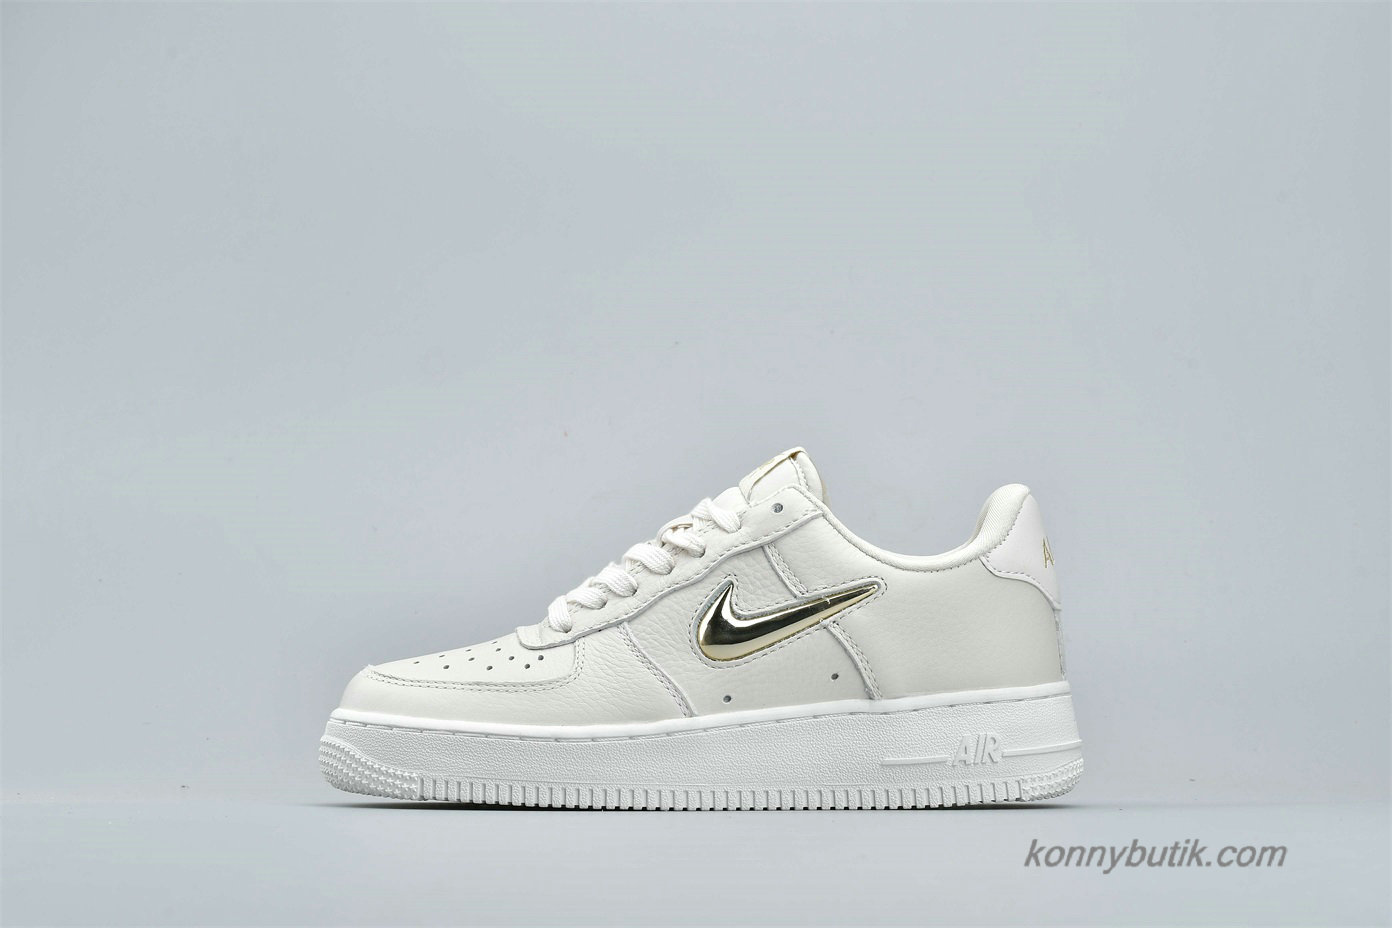 Nike Air Force 1 Low 07 PRM LX Dame Sko Off-White / Guld (AO3814-001)